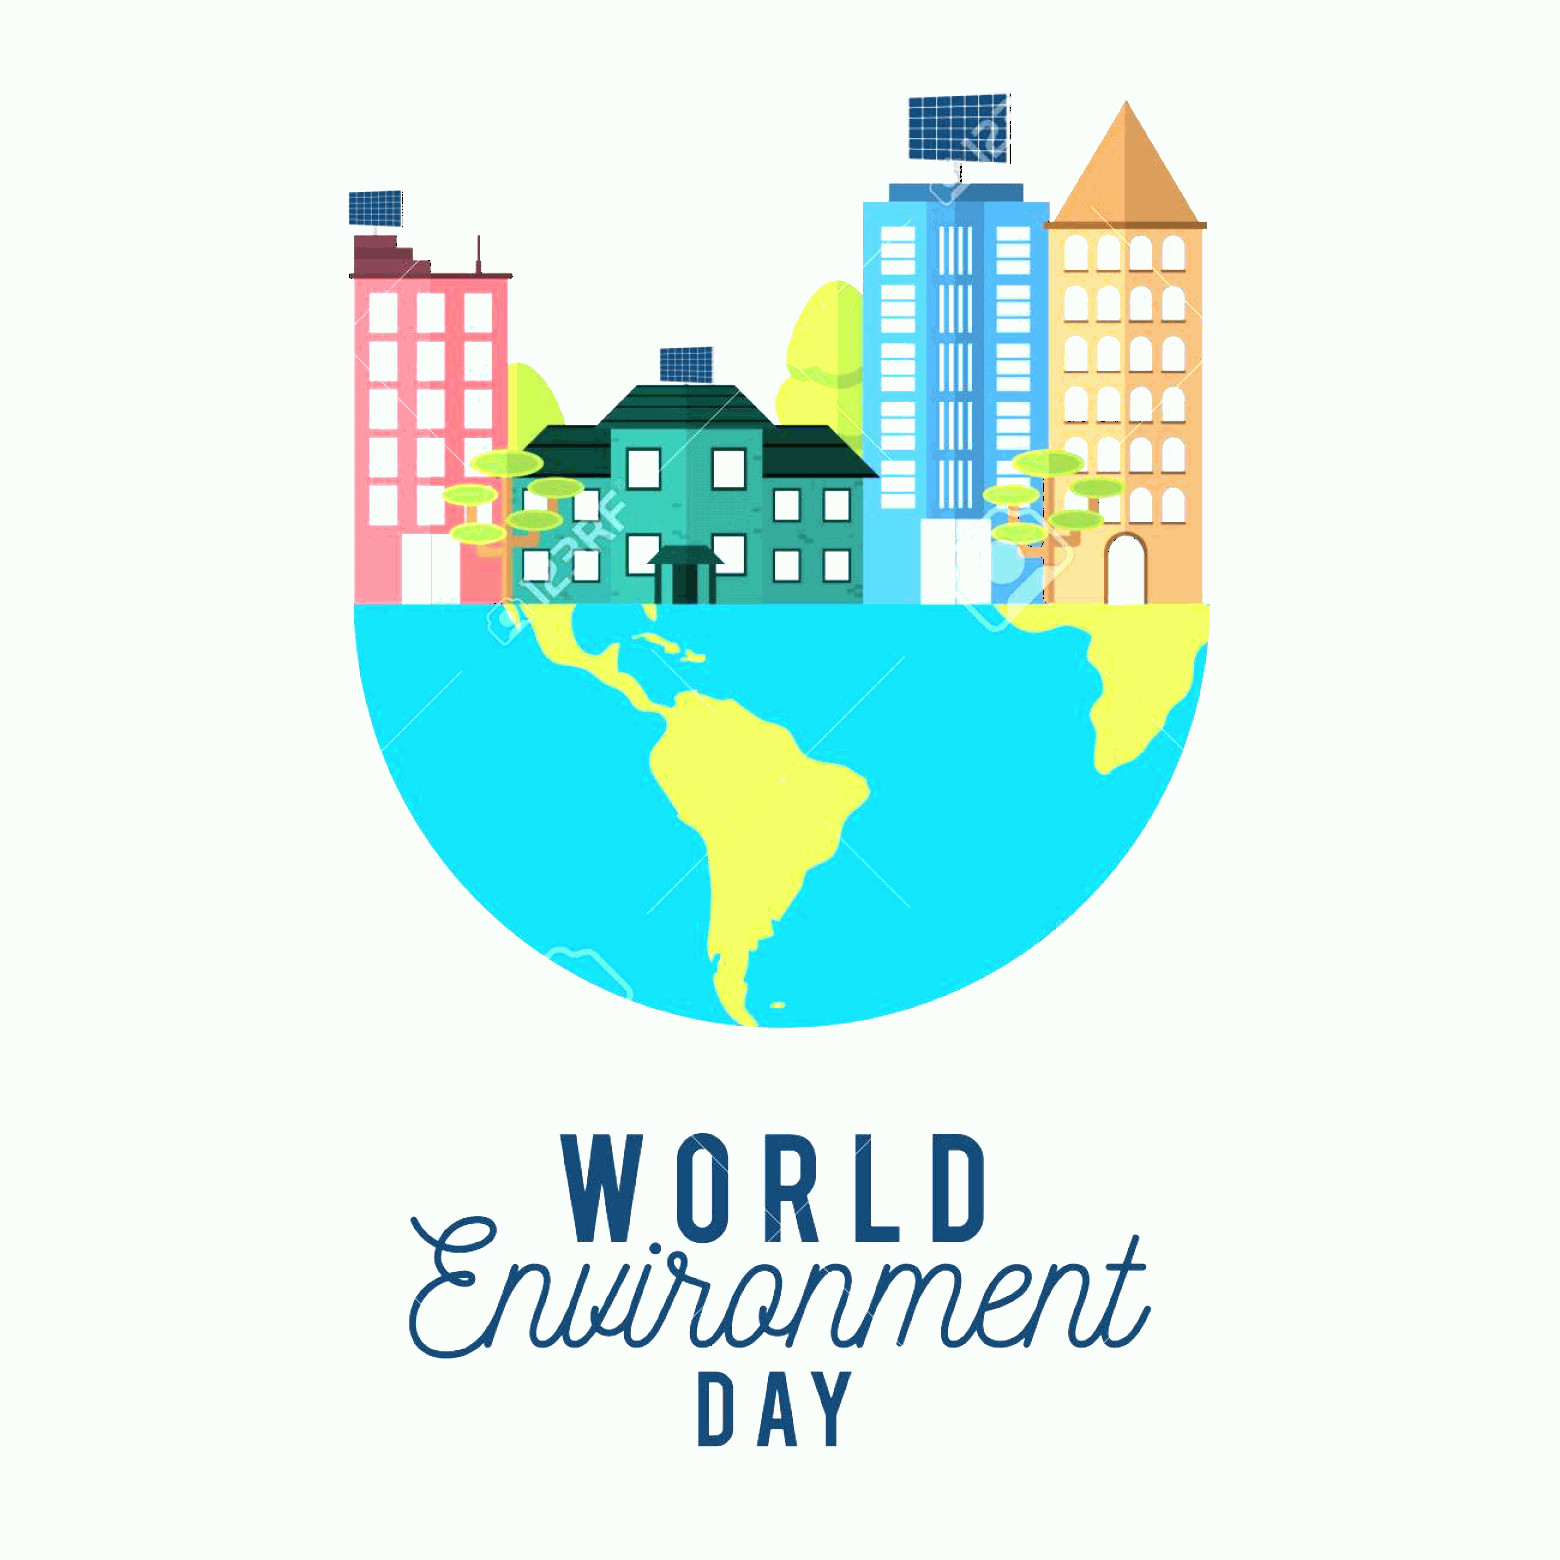 Earth With Buildings Vector: Photostock Vector World Environment Day With Buildings On Earth Vector Illustration